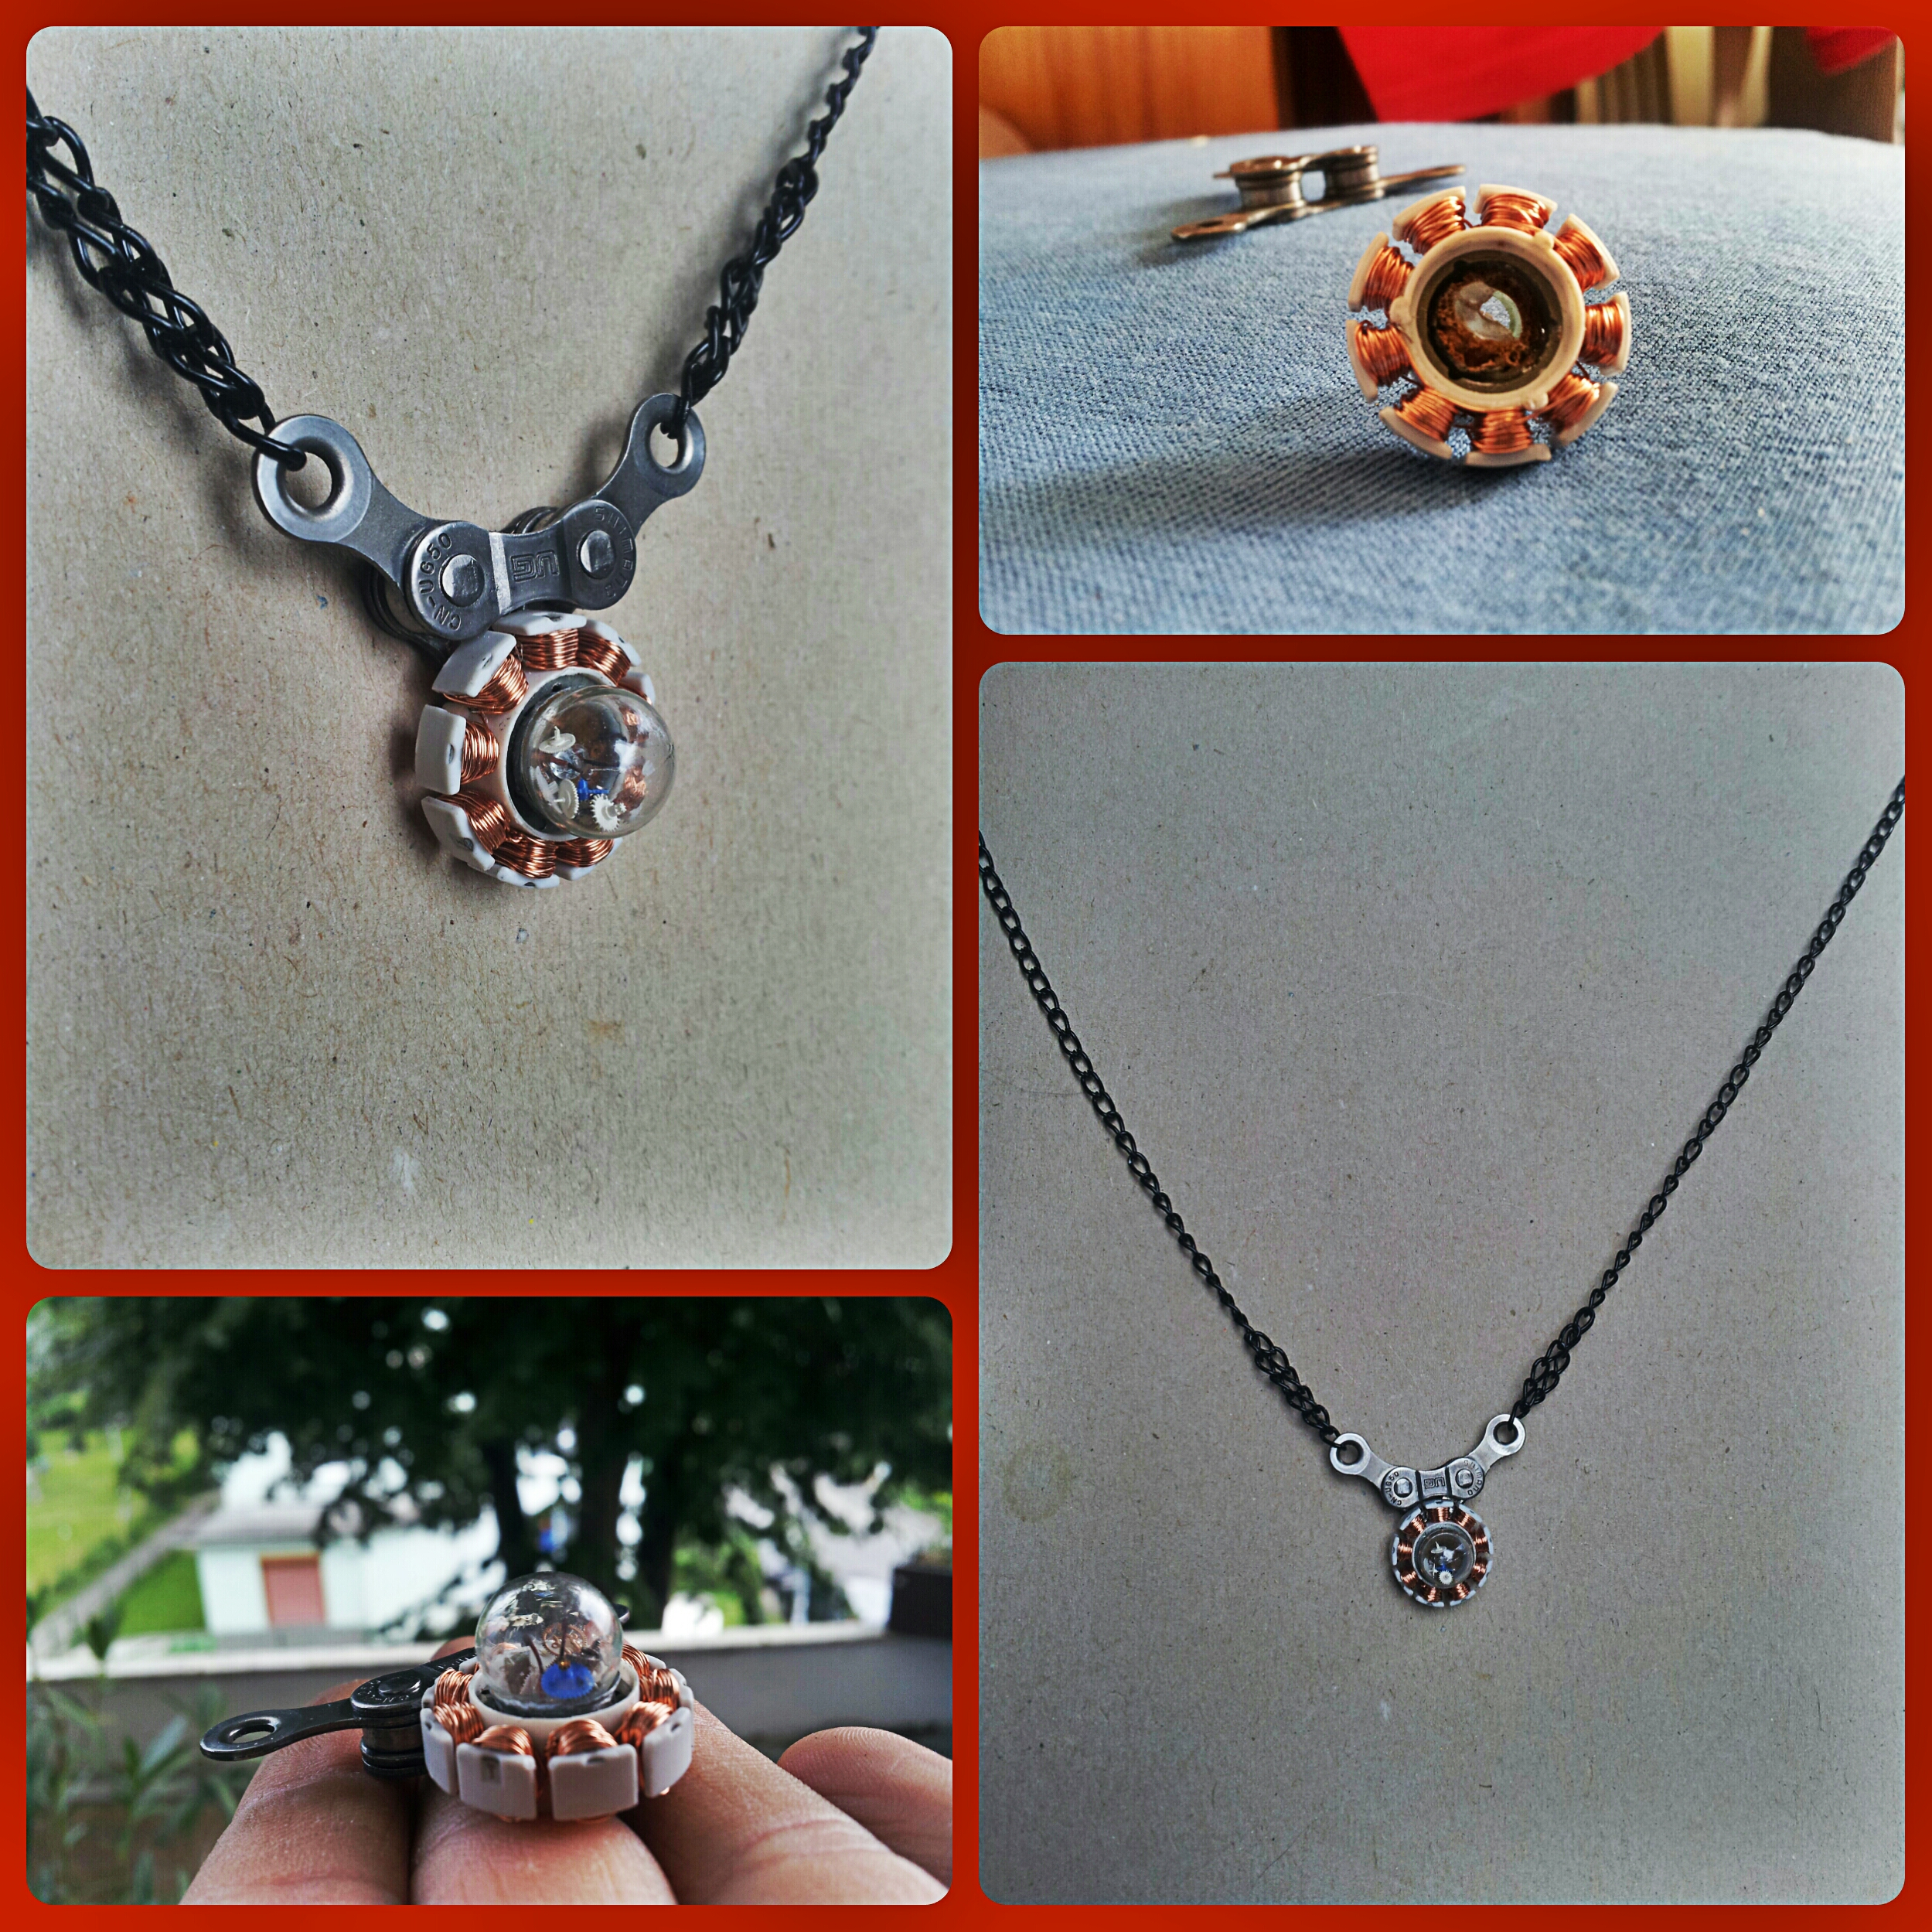 Picture of Bechain. the Necklace.